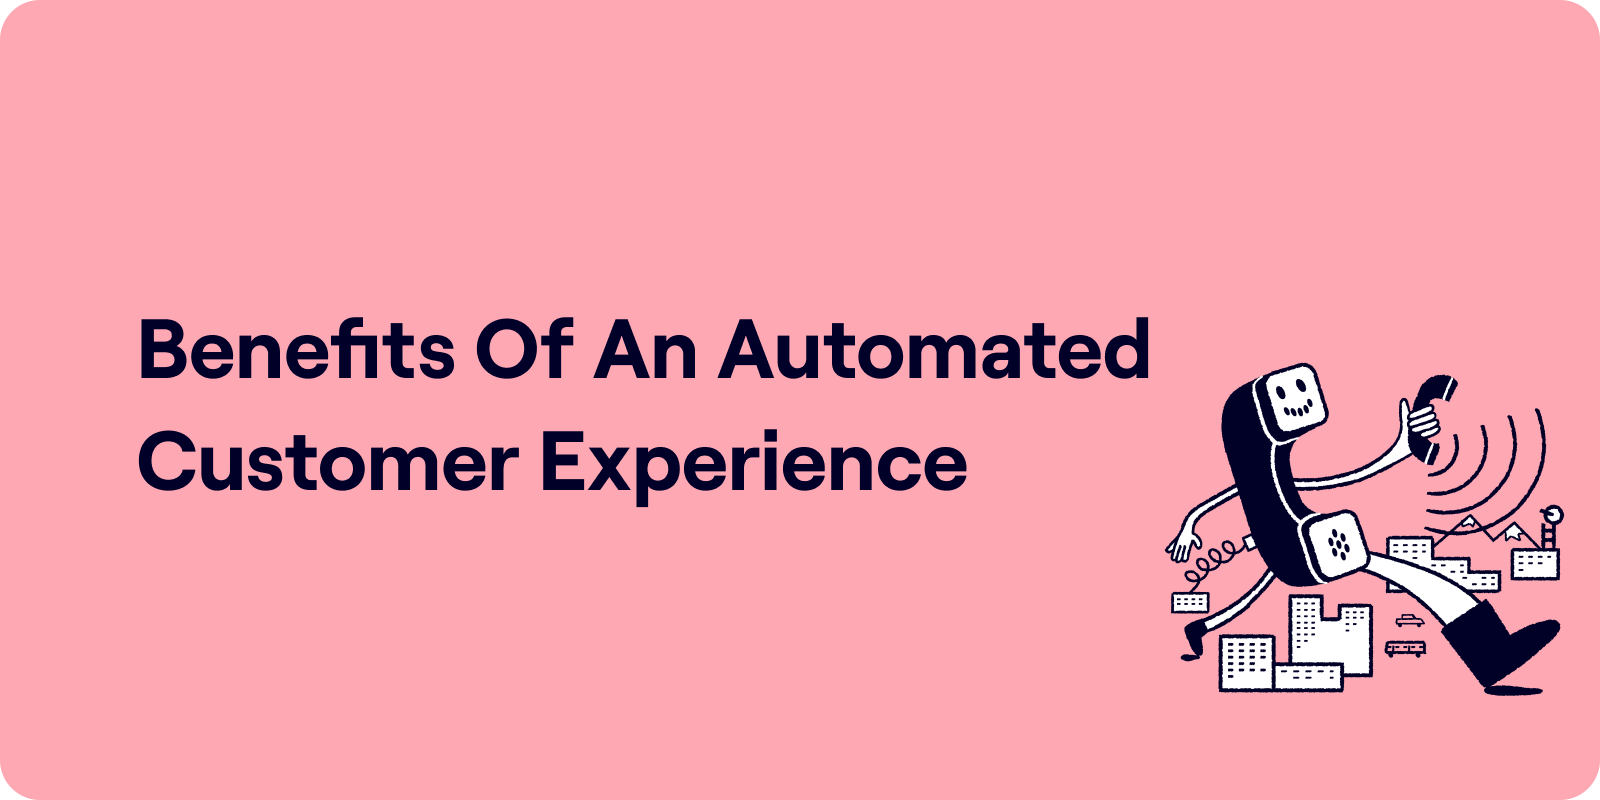 Benefits of an automated customer experience Illustration